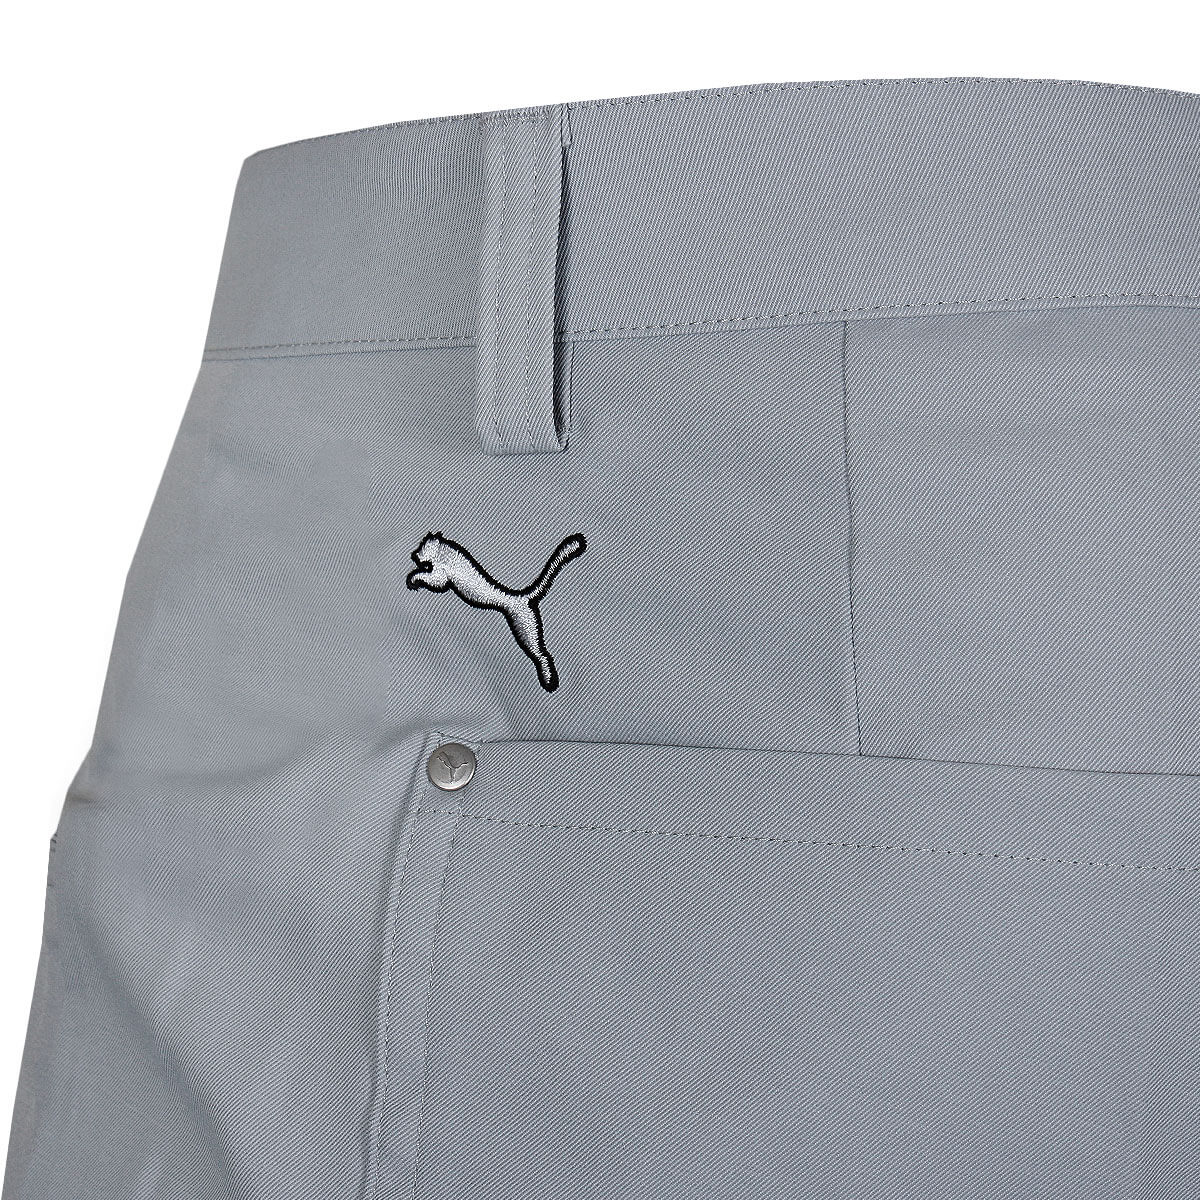 Puma-Golf-Mens-6-Pocket-Pant-DryCELL-Performance-Stretch-Trousers-47-OFF-RRP thumbnail 19